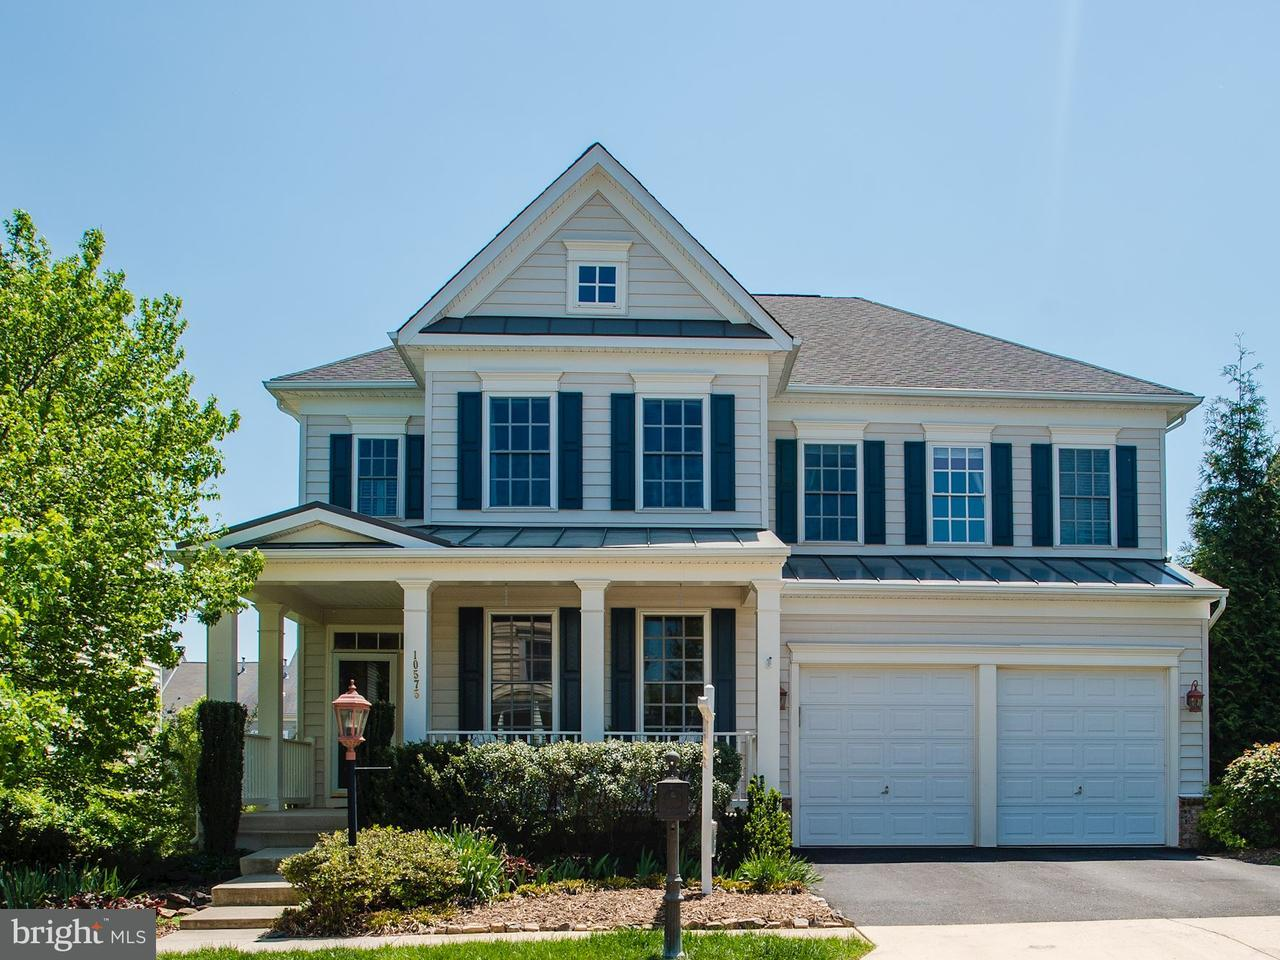 New Homes For Sale Prince William County Va